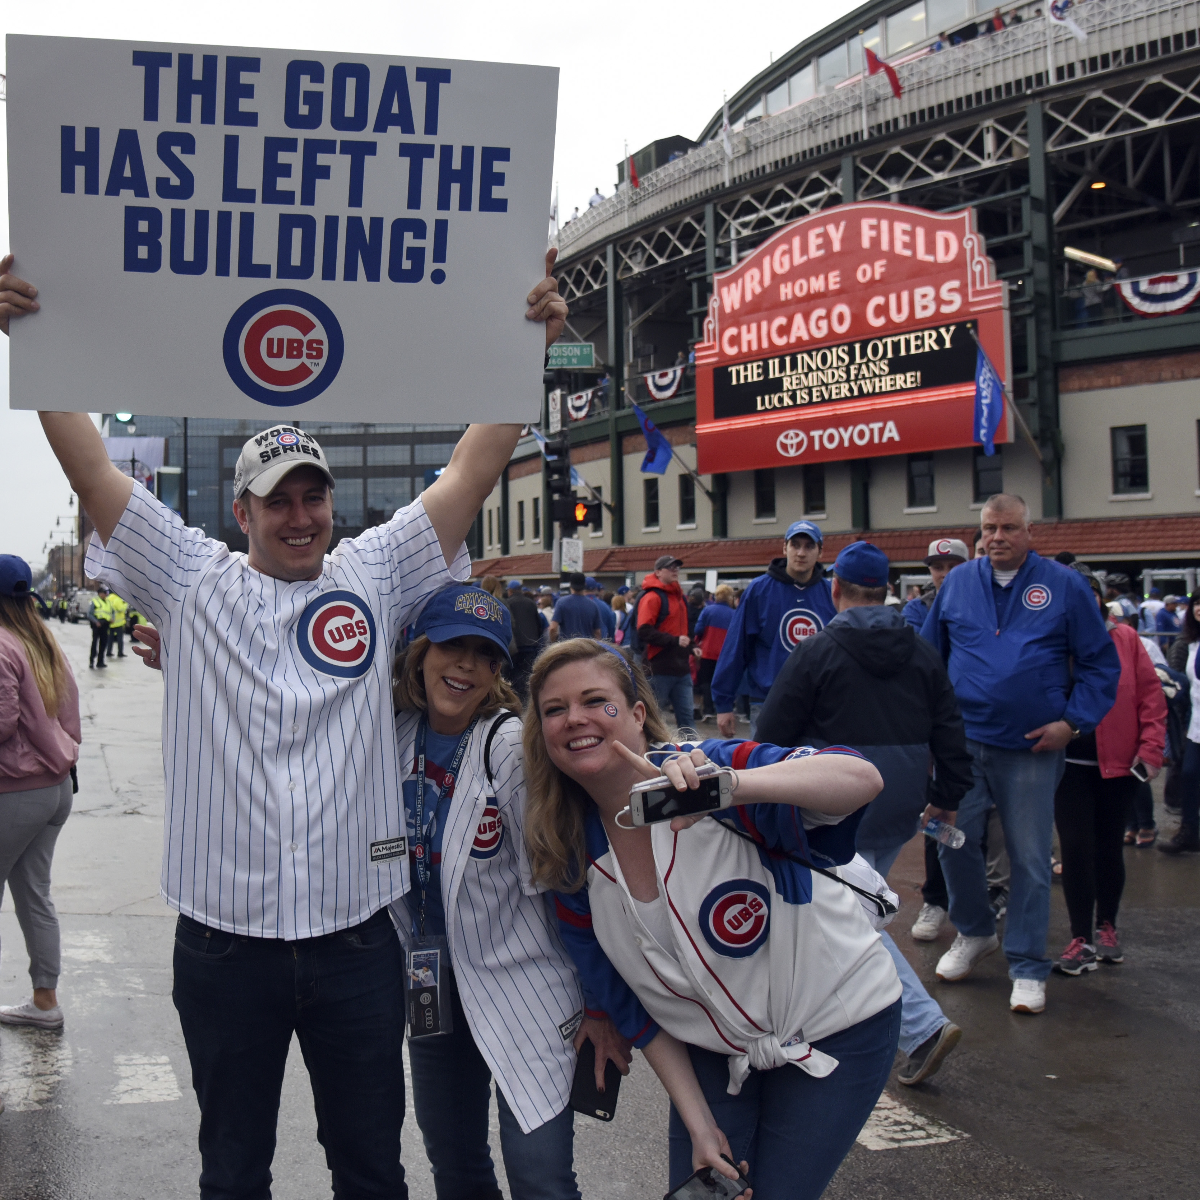 Dan Virgilio, left, Mary McSwain, center, and Elizabeth Roberts, right, hold a sign in front of Wrigley Field before the Cubs home opener. (AP Photo/David Banks)